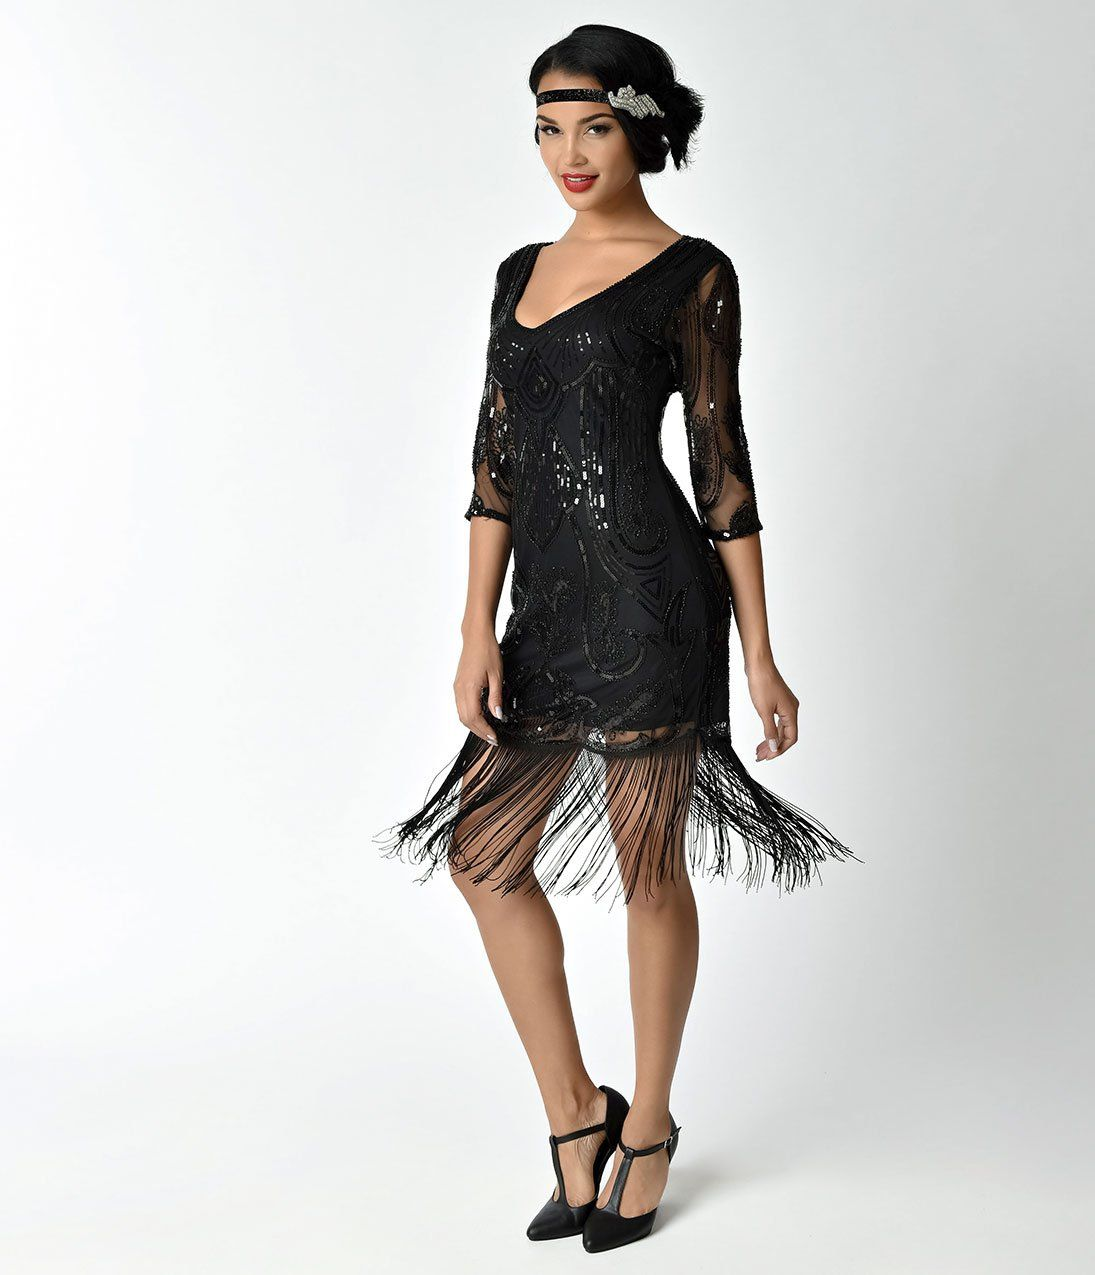 1920s style dresses flapper dresses to gatsby dresses in